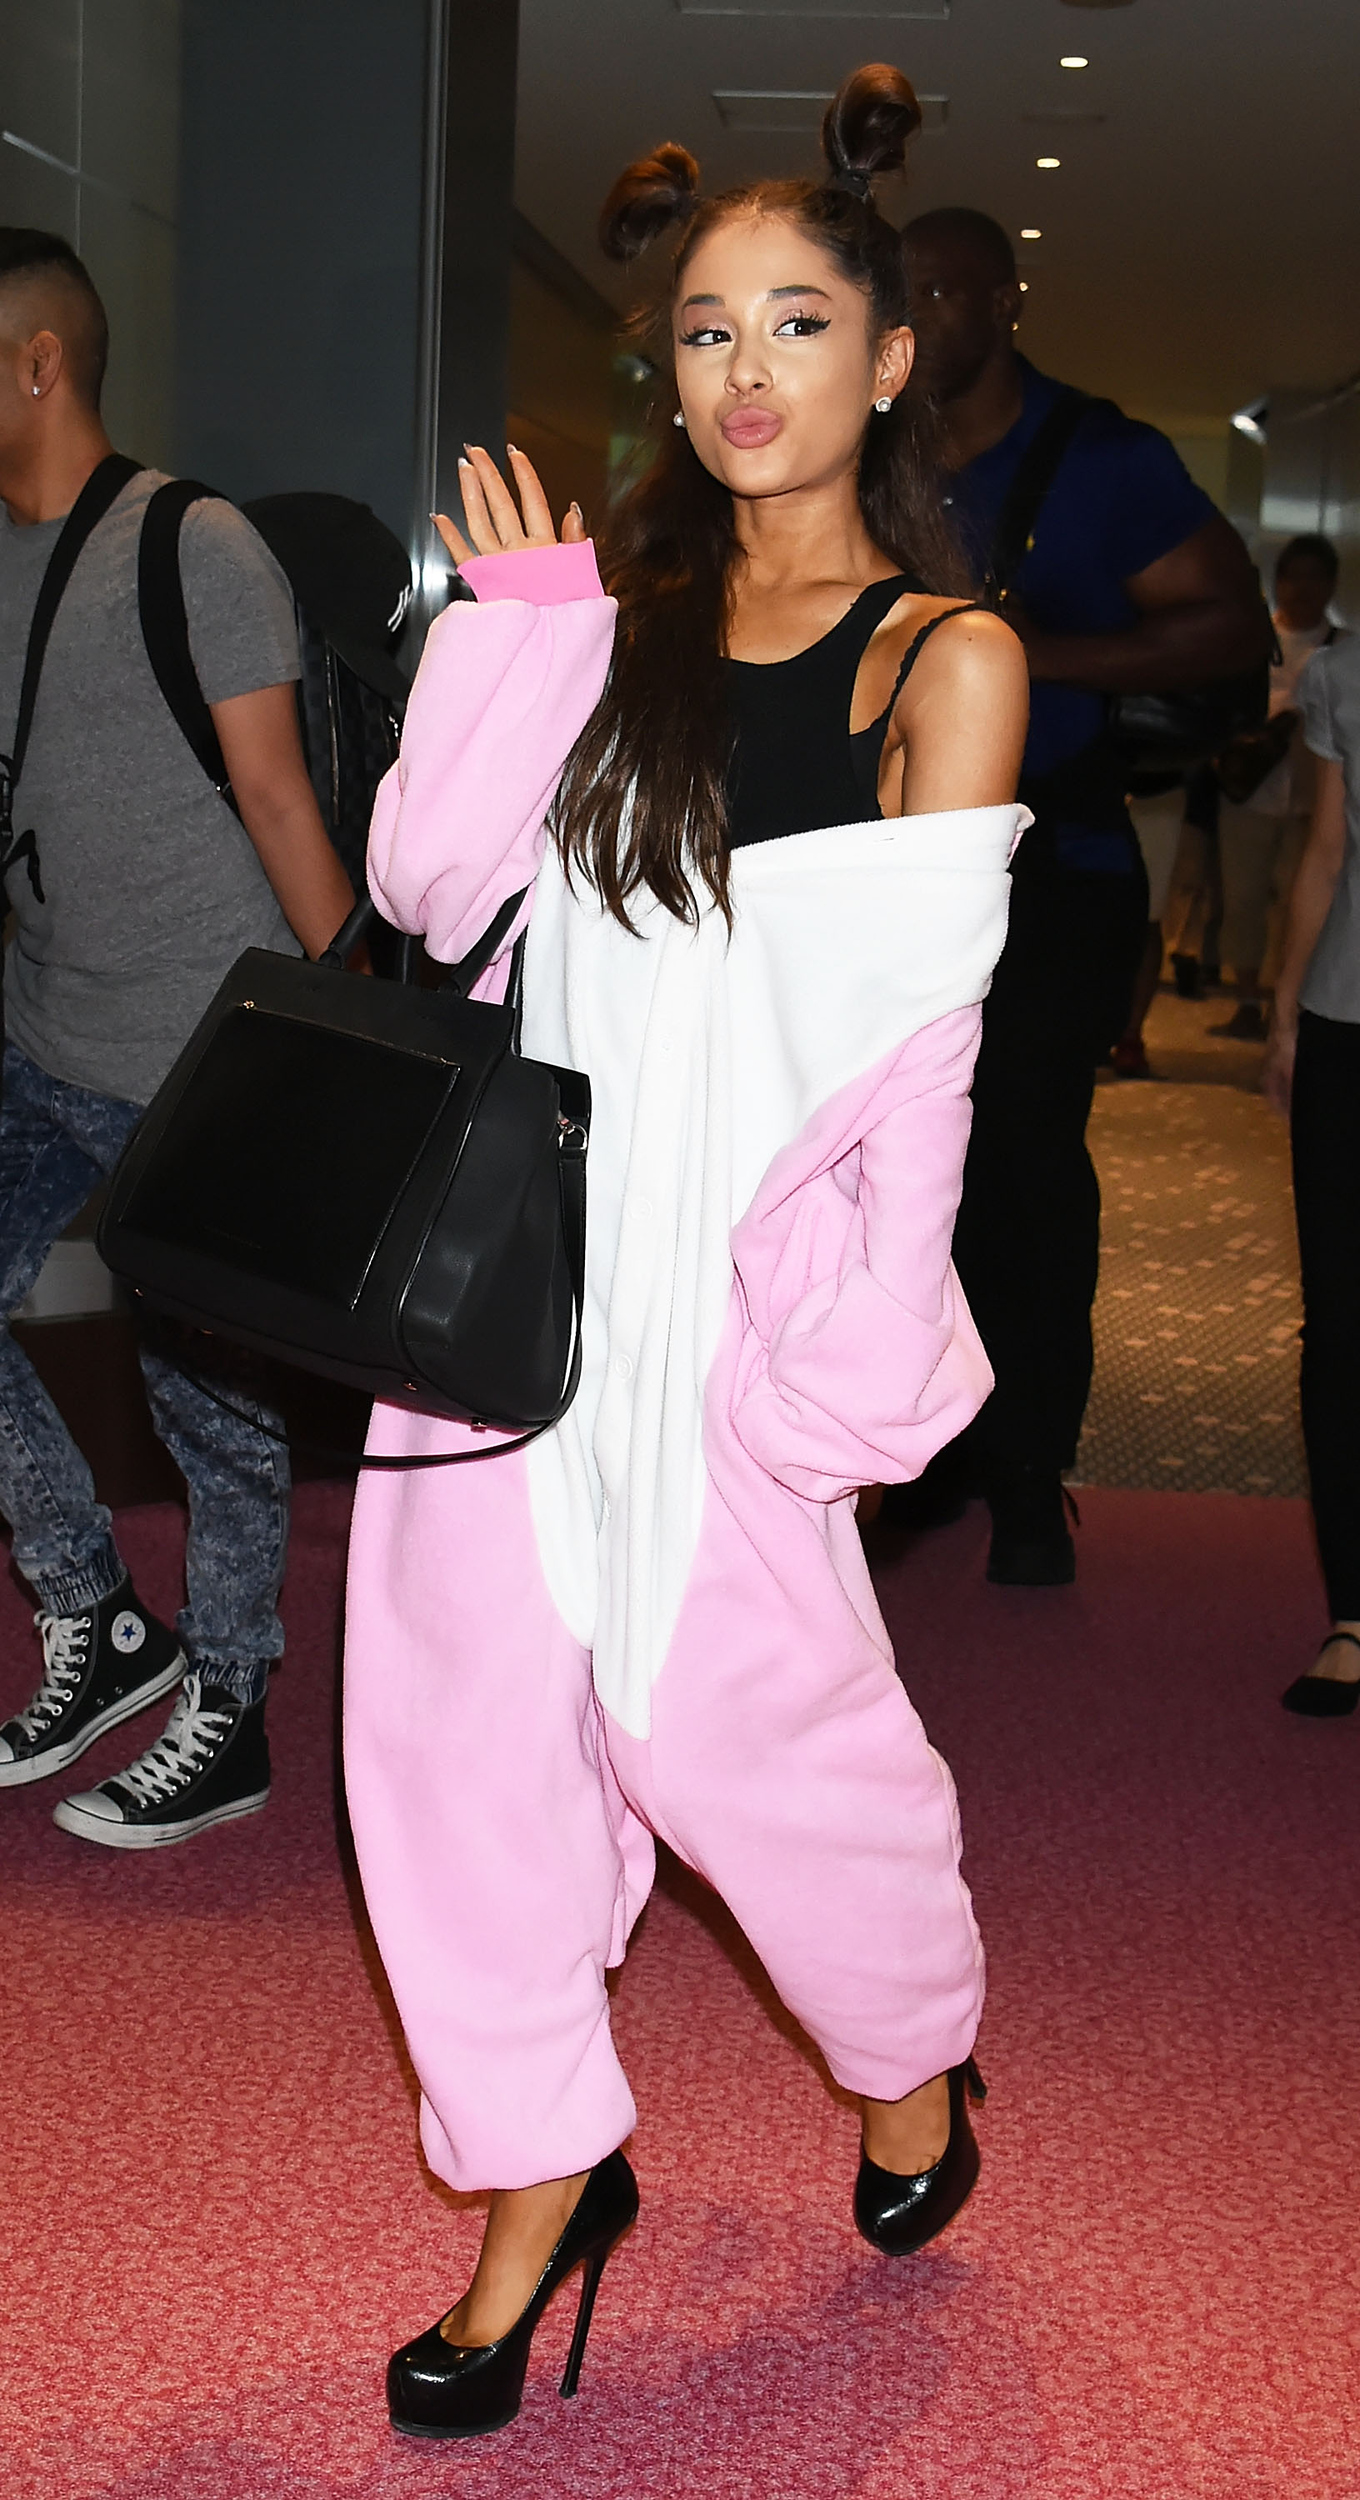 Ariana grande tops fashion fails list with bizarre onesie aol entertainment